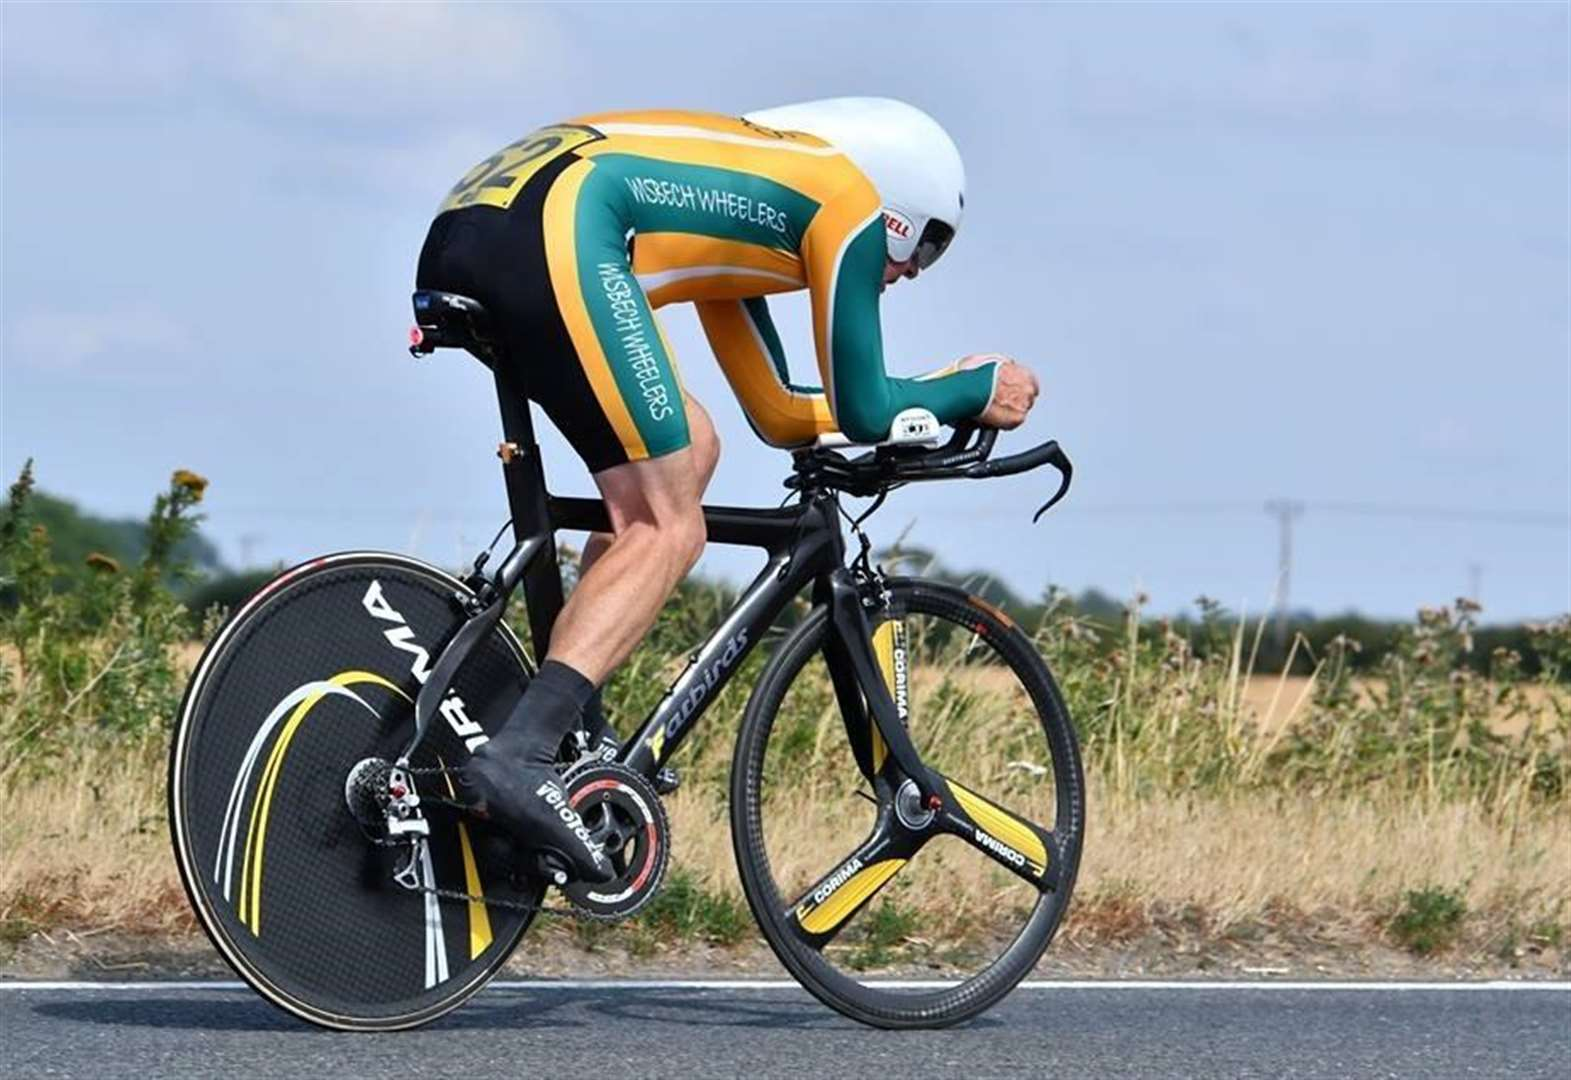 Roger, 71, is fastest Wisbech Wheelers rider by one second near Newmarket